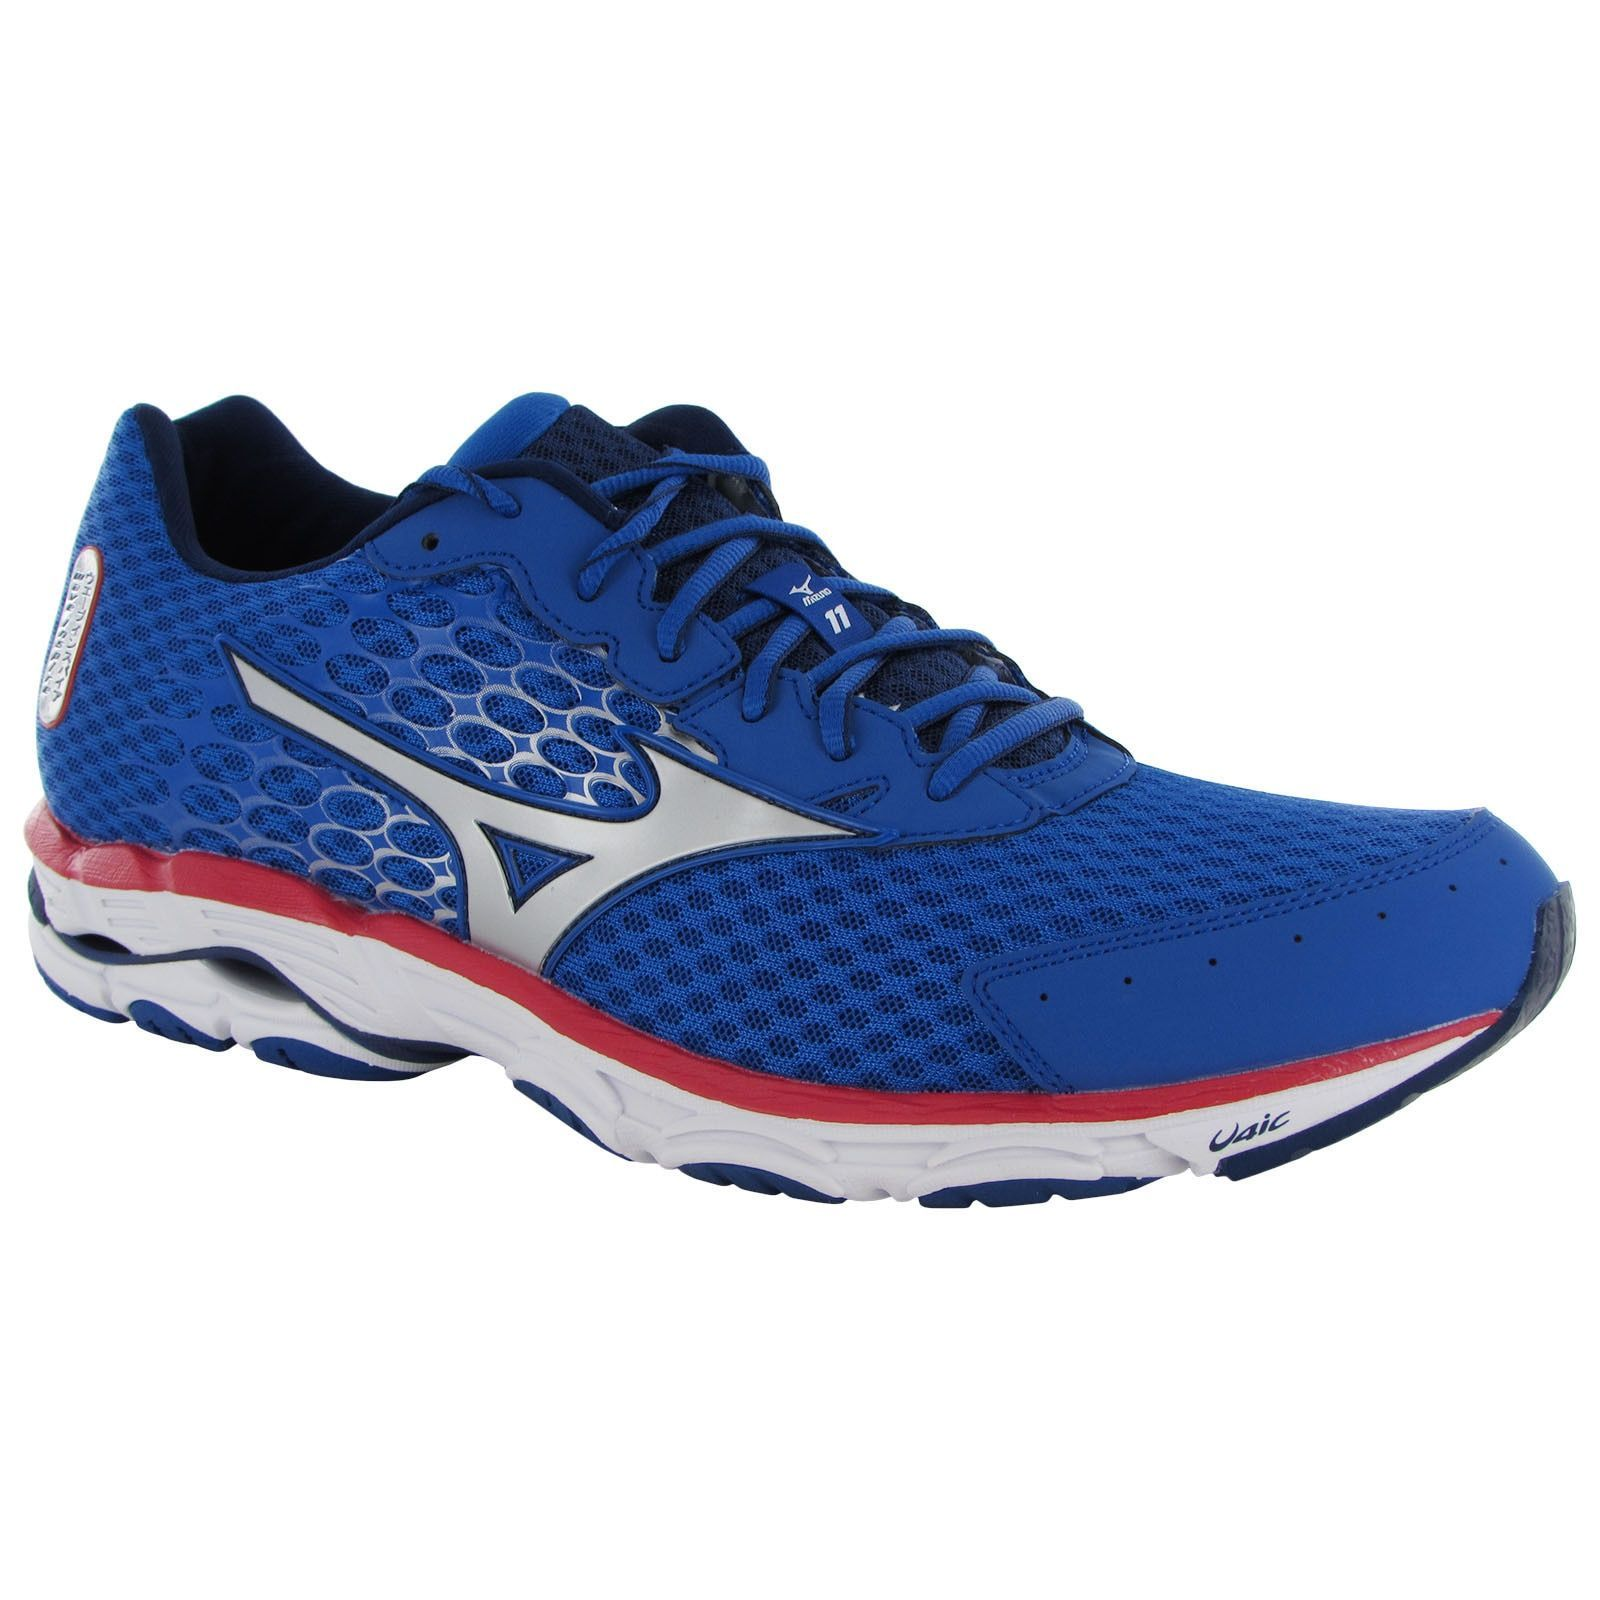 f4dc688a53bf Mizuno Mens Wave Inspire 11 Running Sneaker Shoes (7.5)